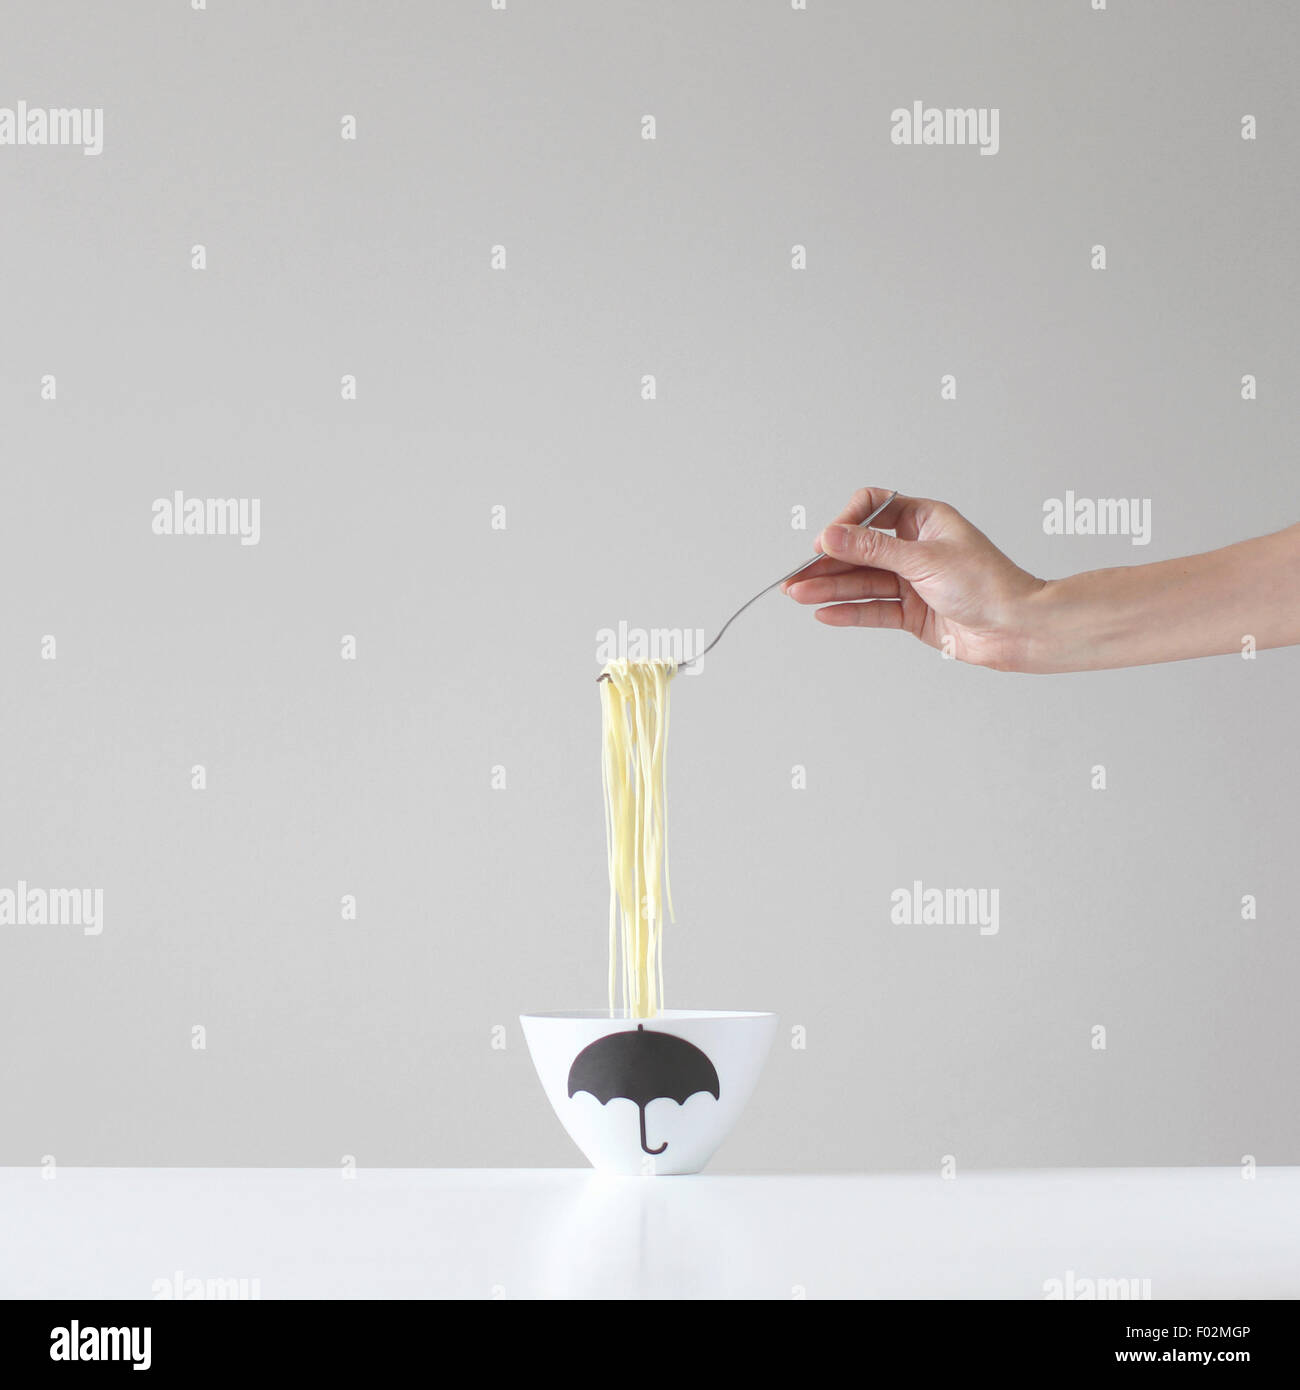 hand holding a forkful of spaghetti over a bowl - Stock Image